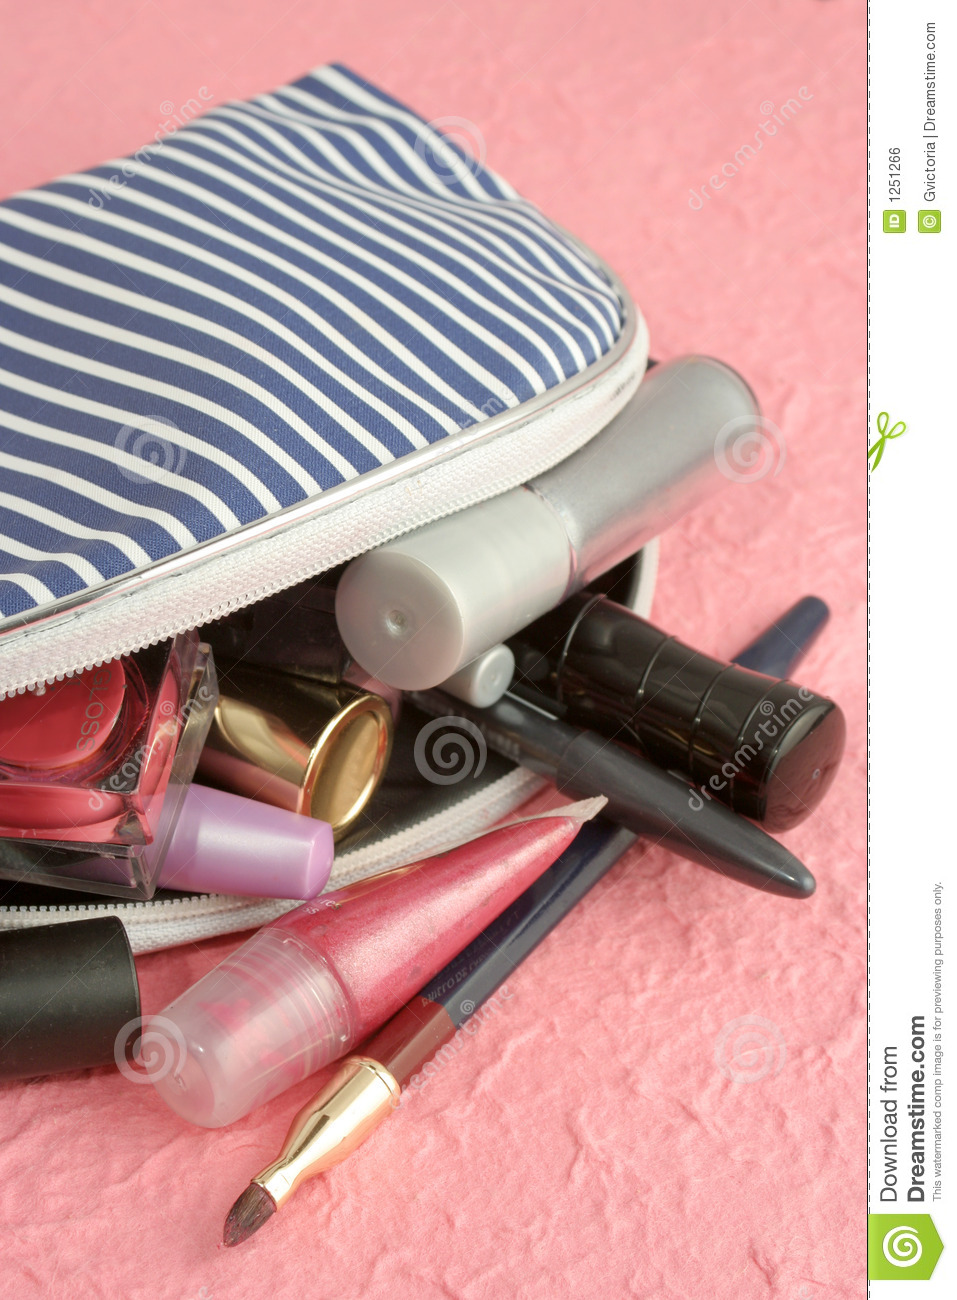 Makeup Case Stock Photo Image Of Creams Brushes Coloring 1251266